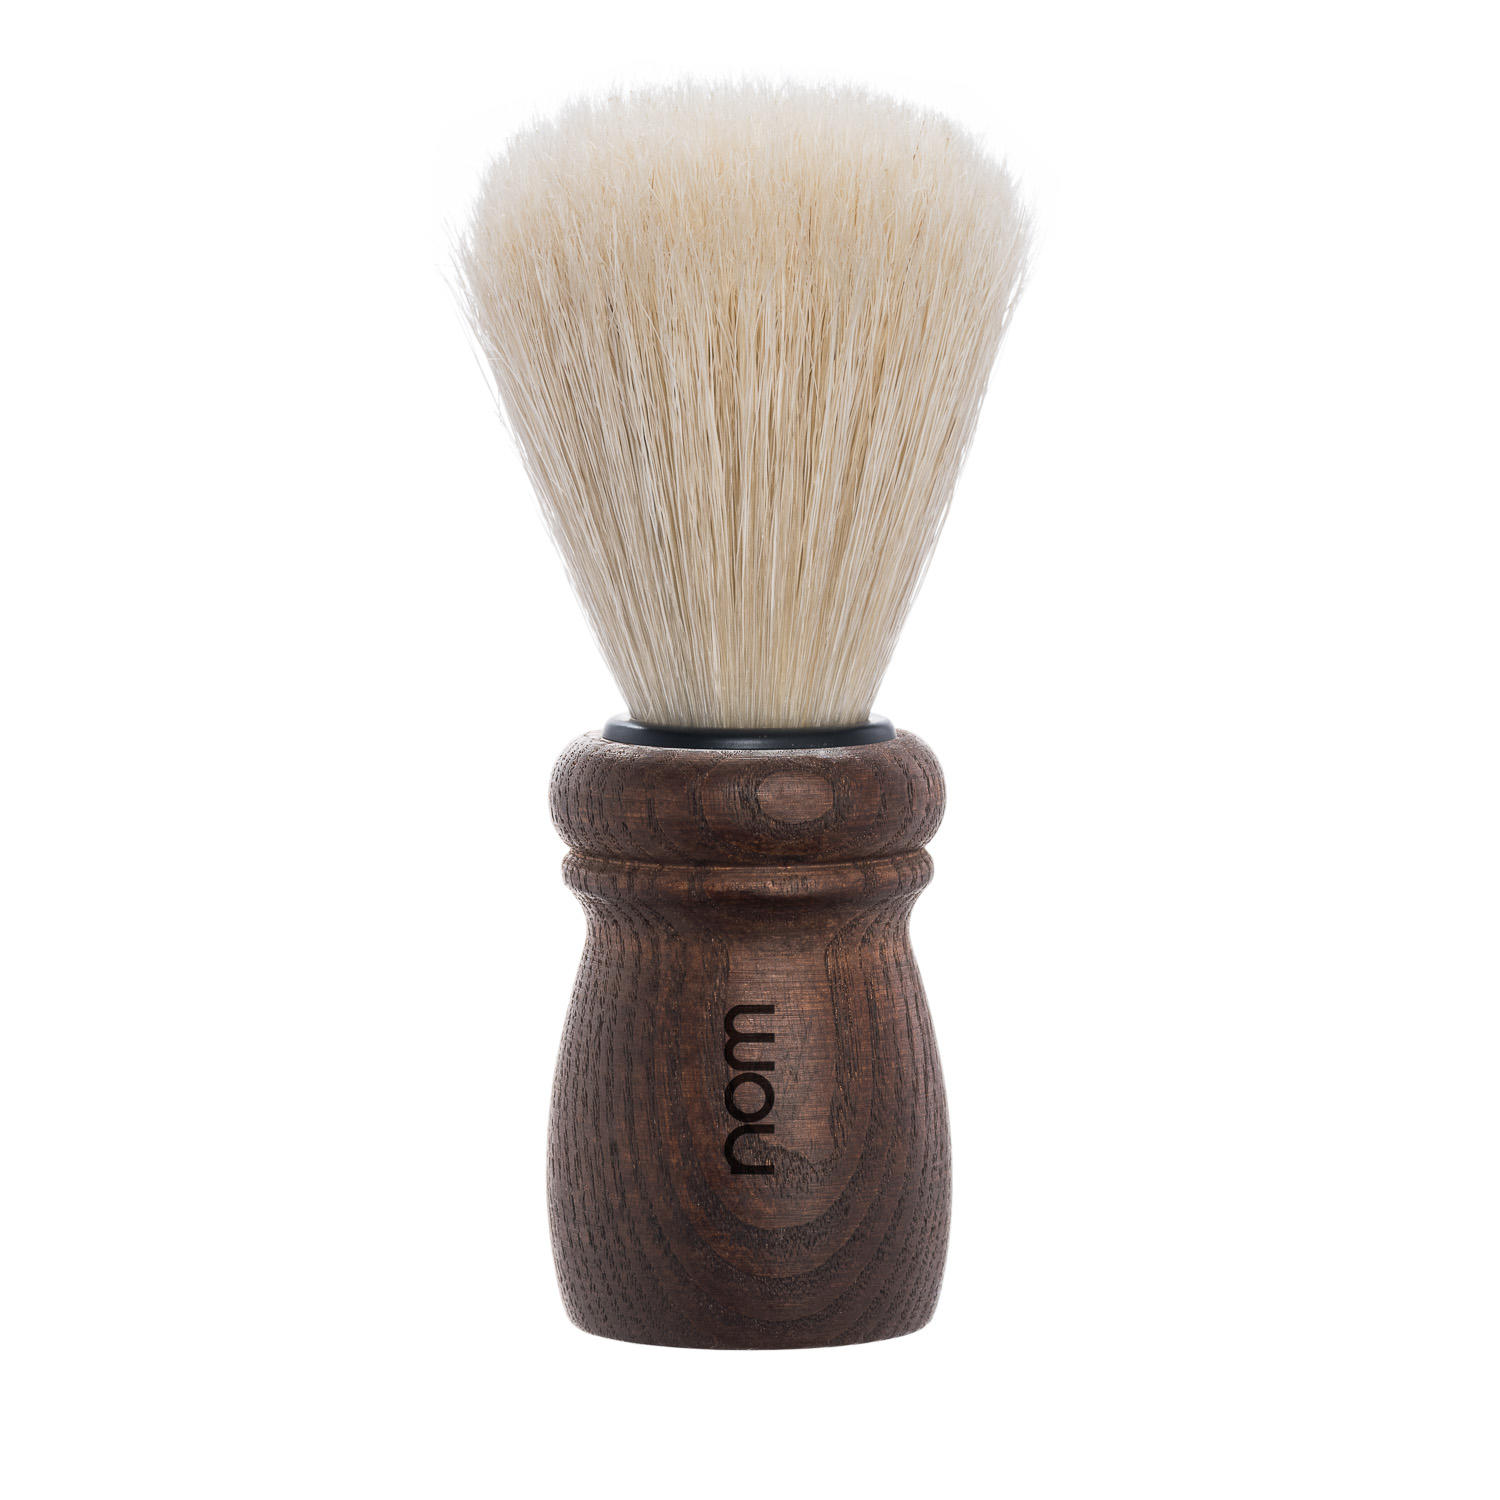 ALFRED15DA nom ALFRED, Dark Ash, Natural Bristle Shaving Brush